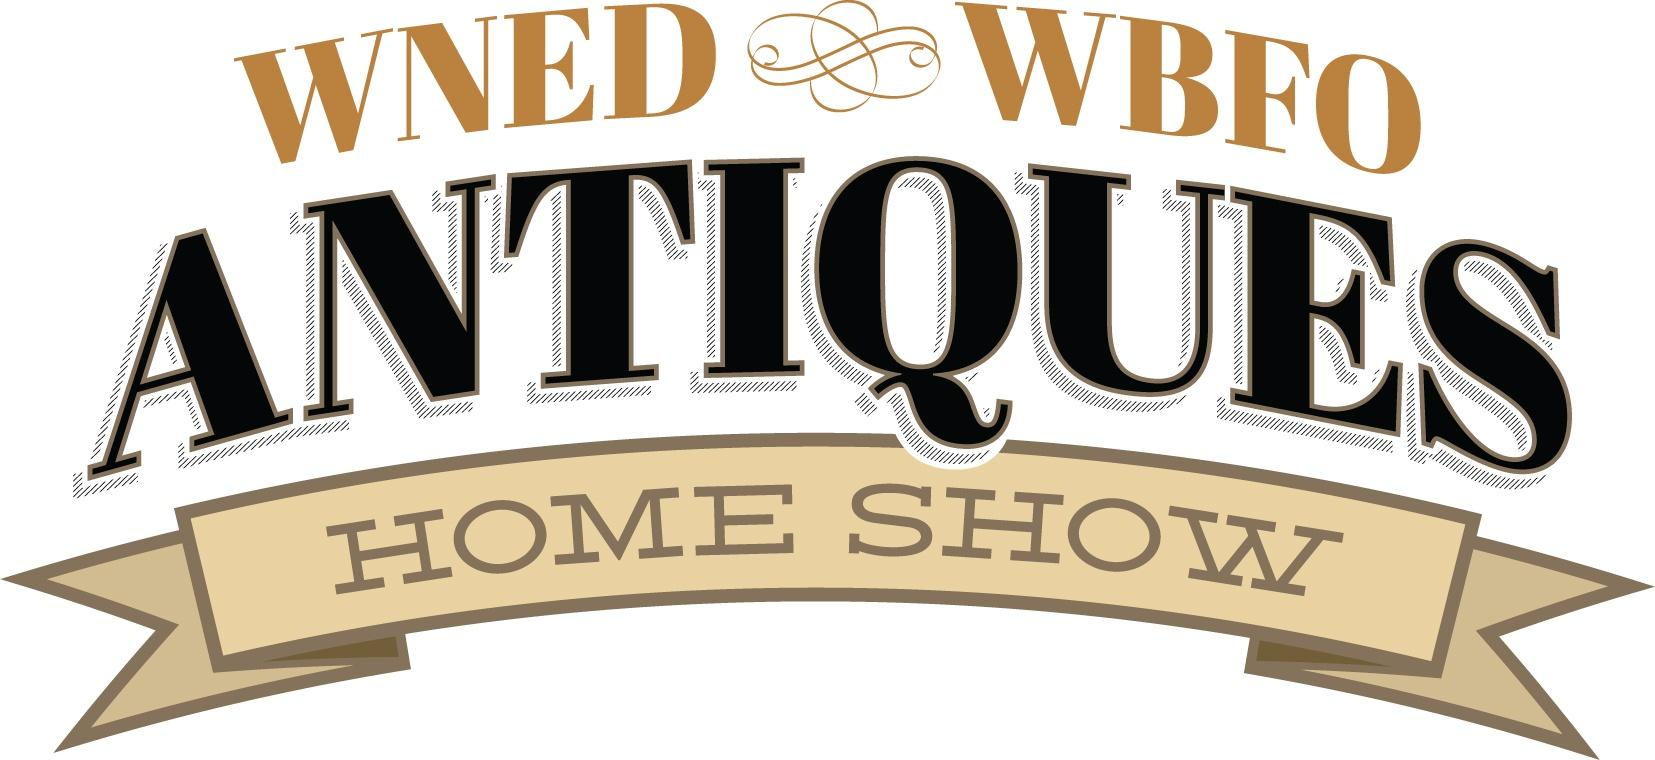 Antiaues Home Show